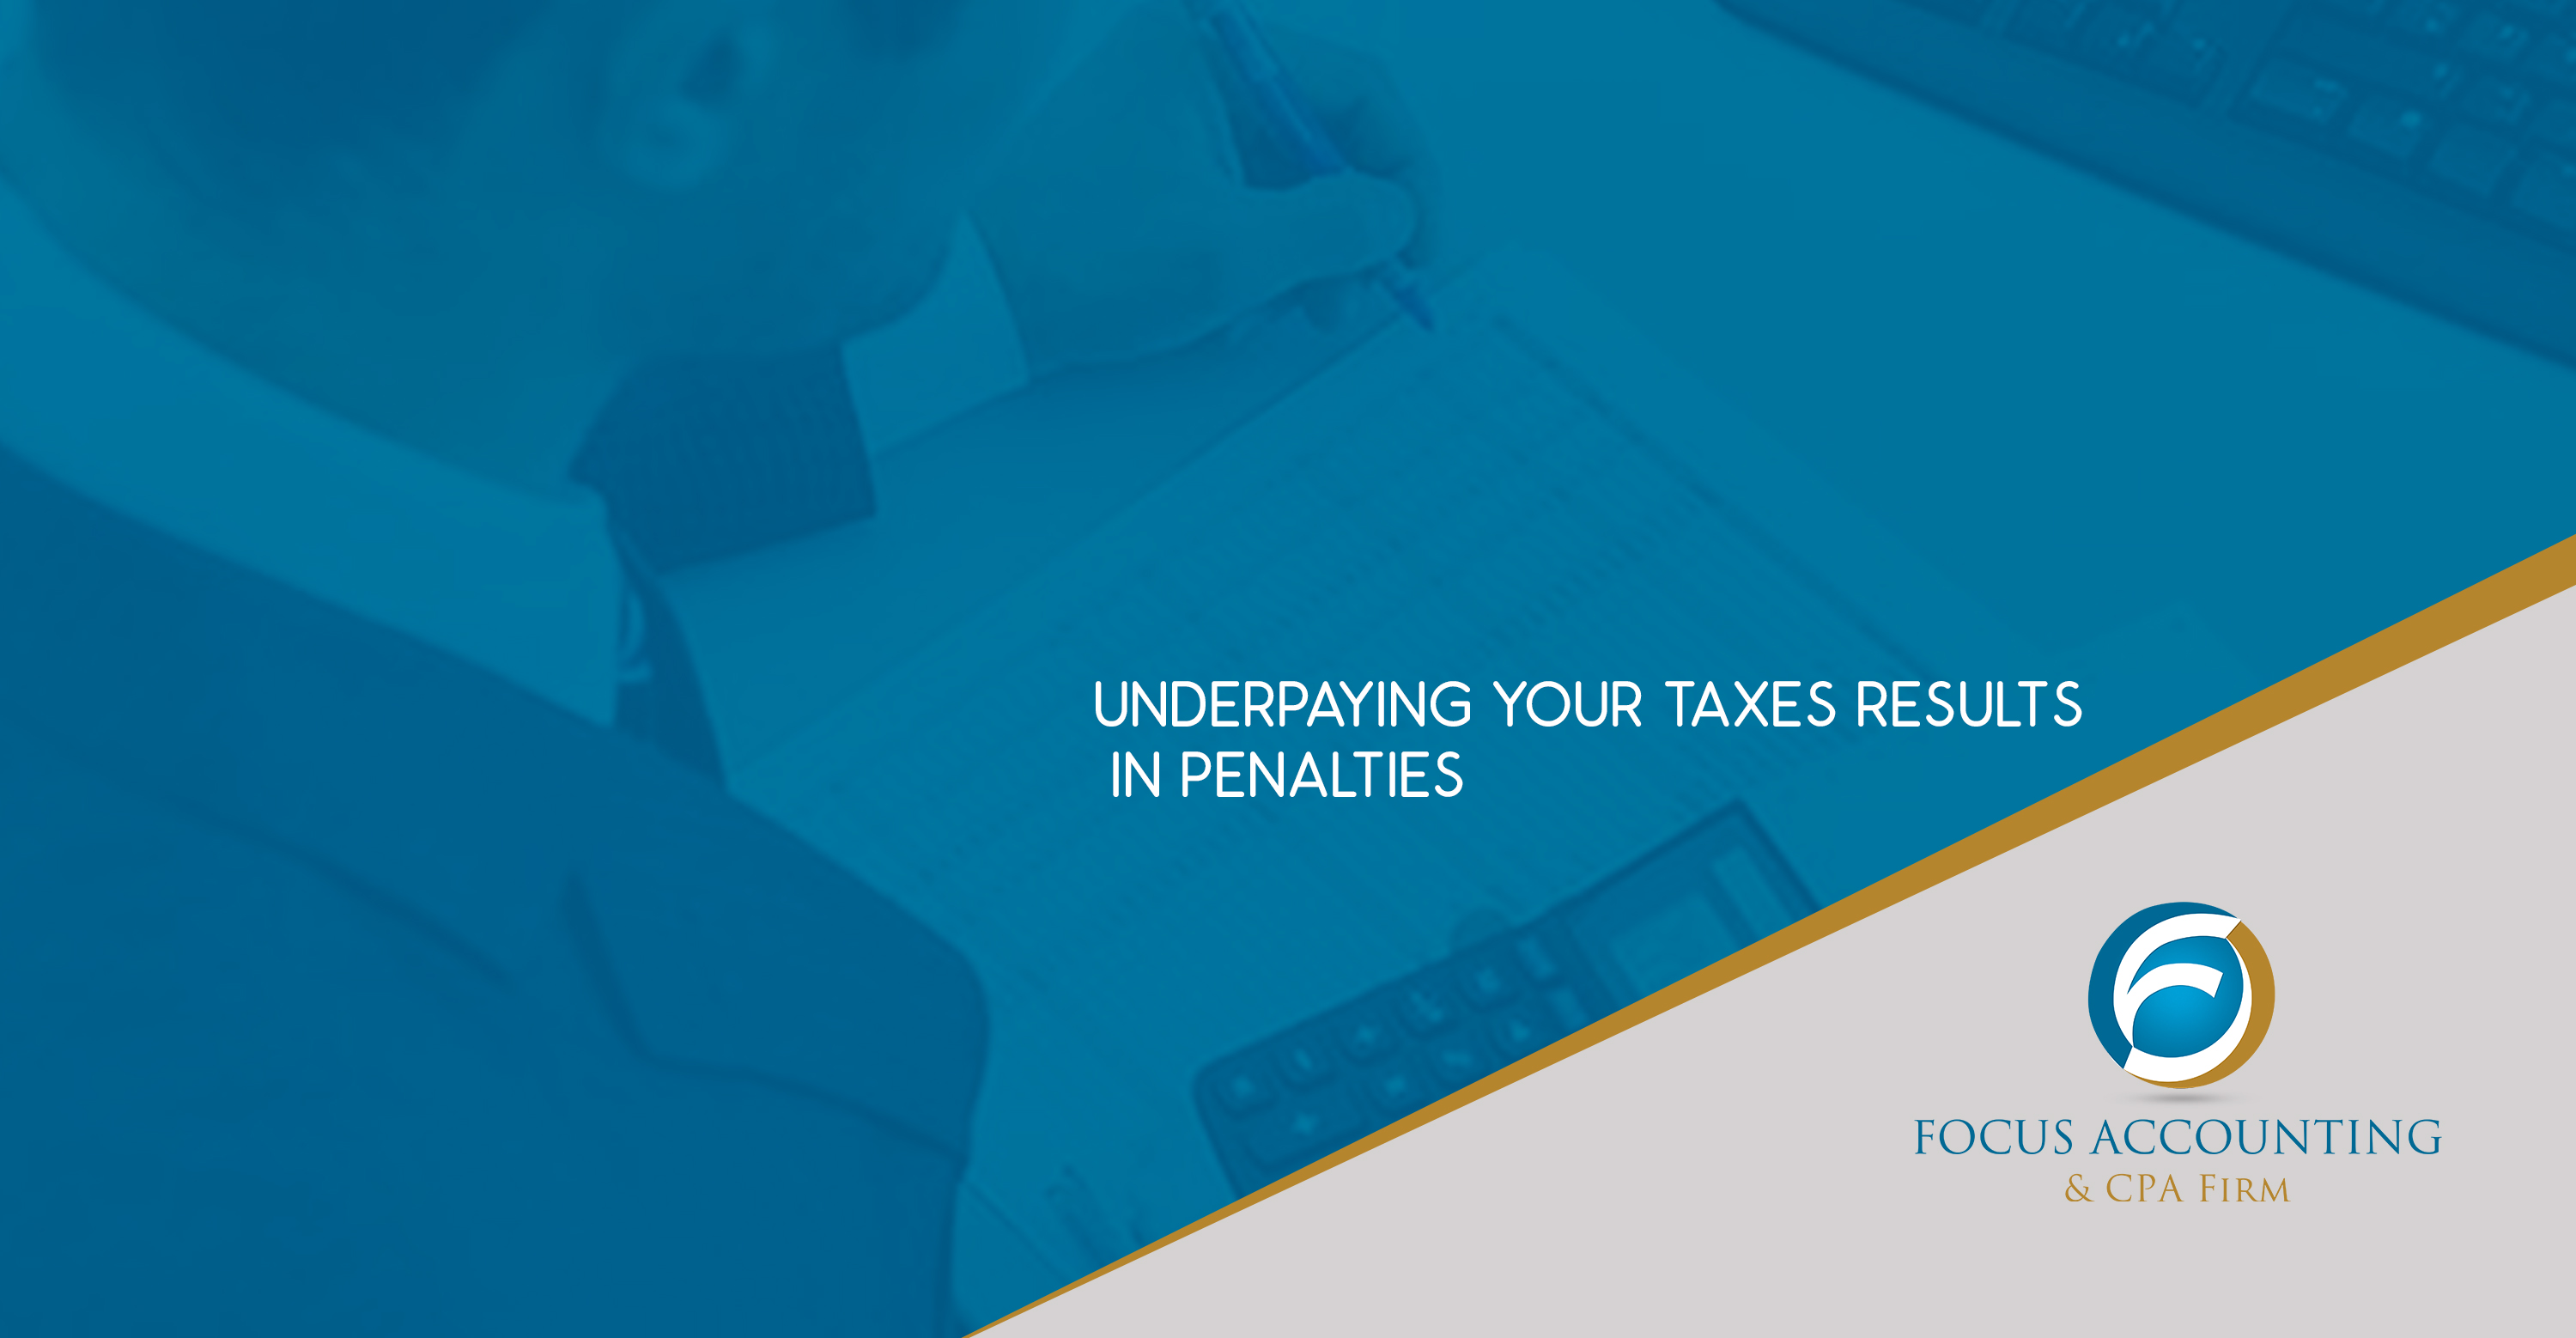 Underpaying Your Taxes Results In Penalties